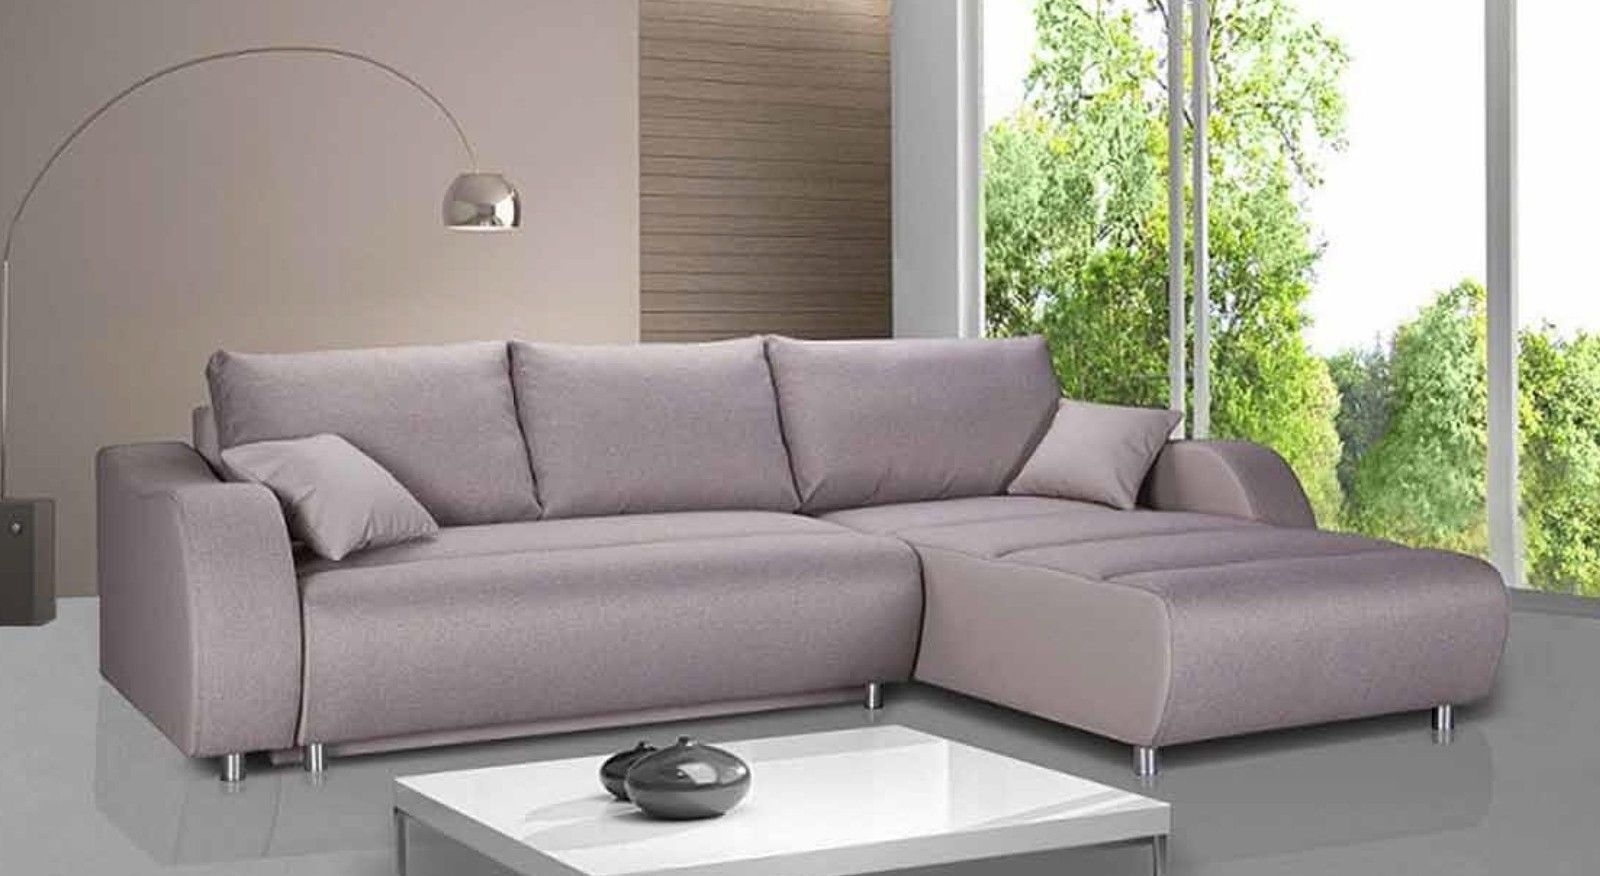 cheap corner sofas on finance how to make sofa bed cover 15 collection of ideas